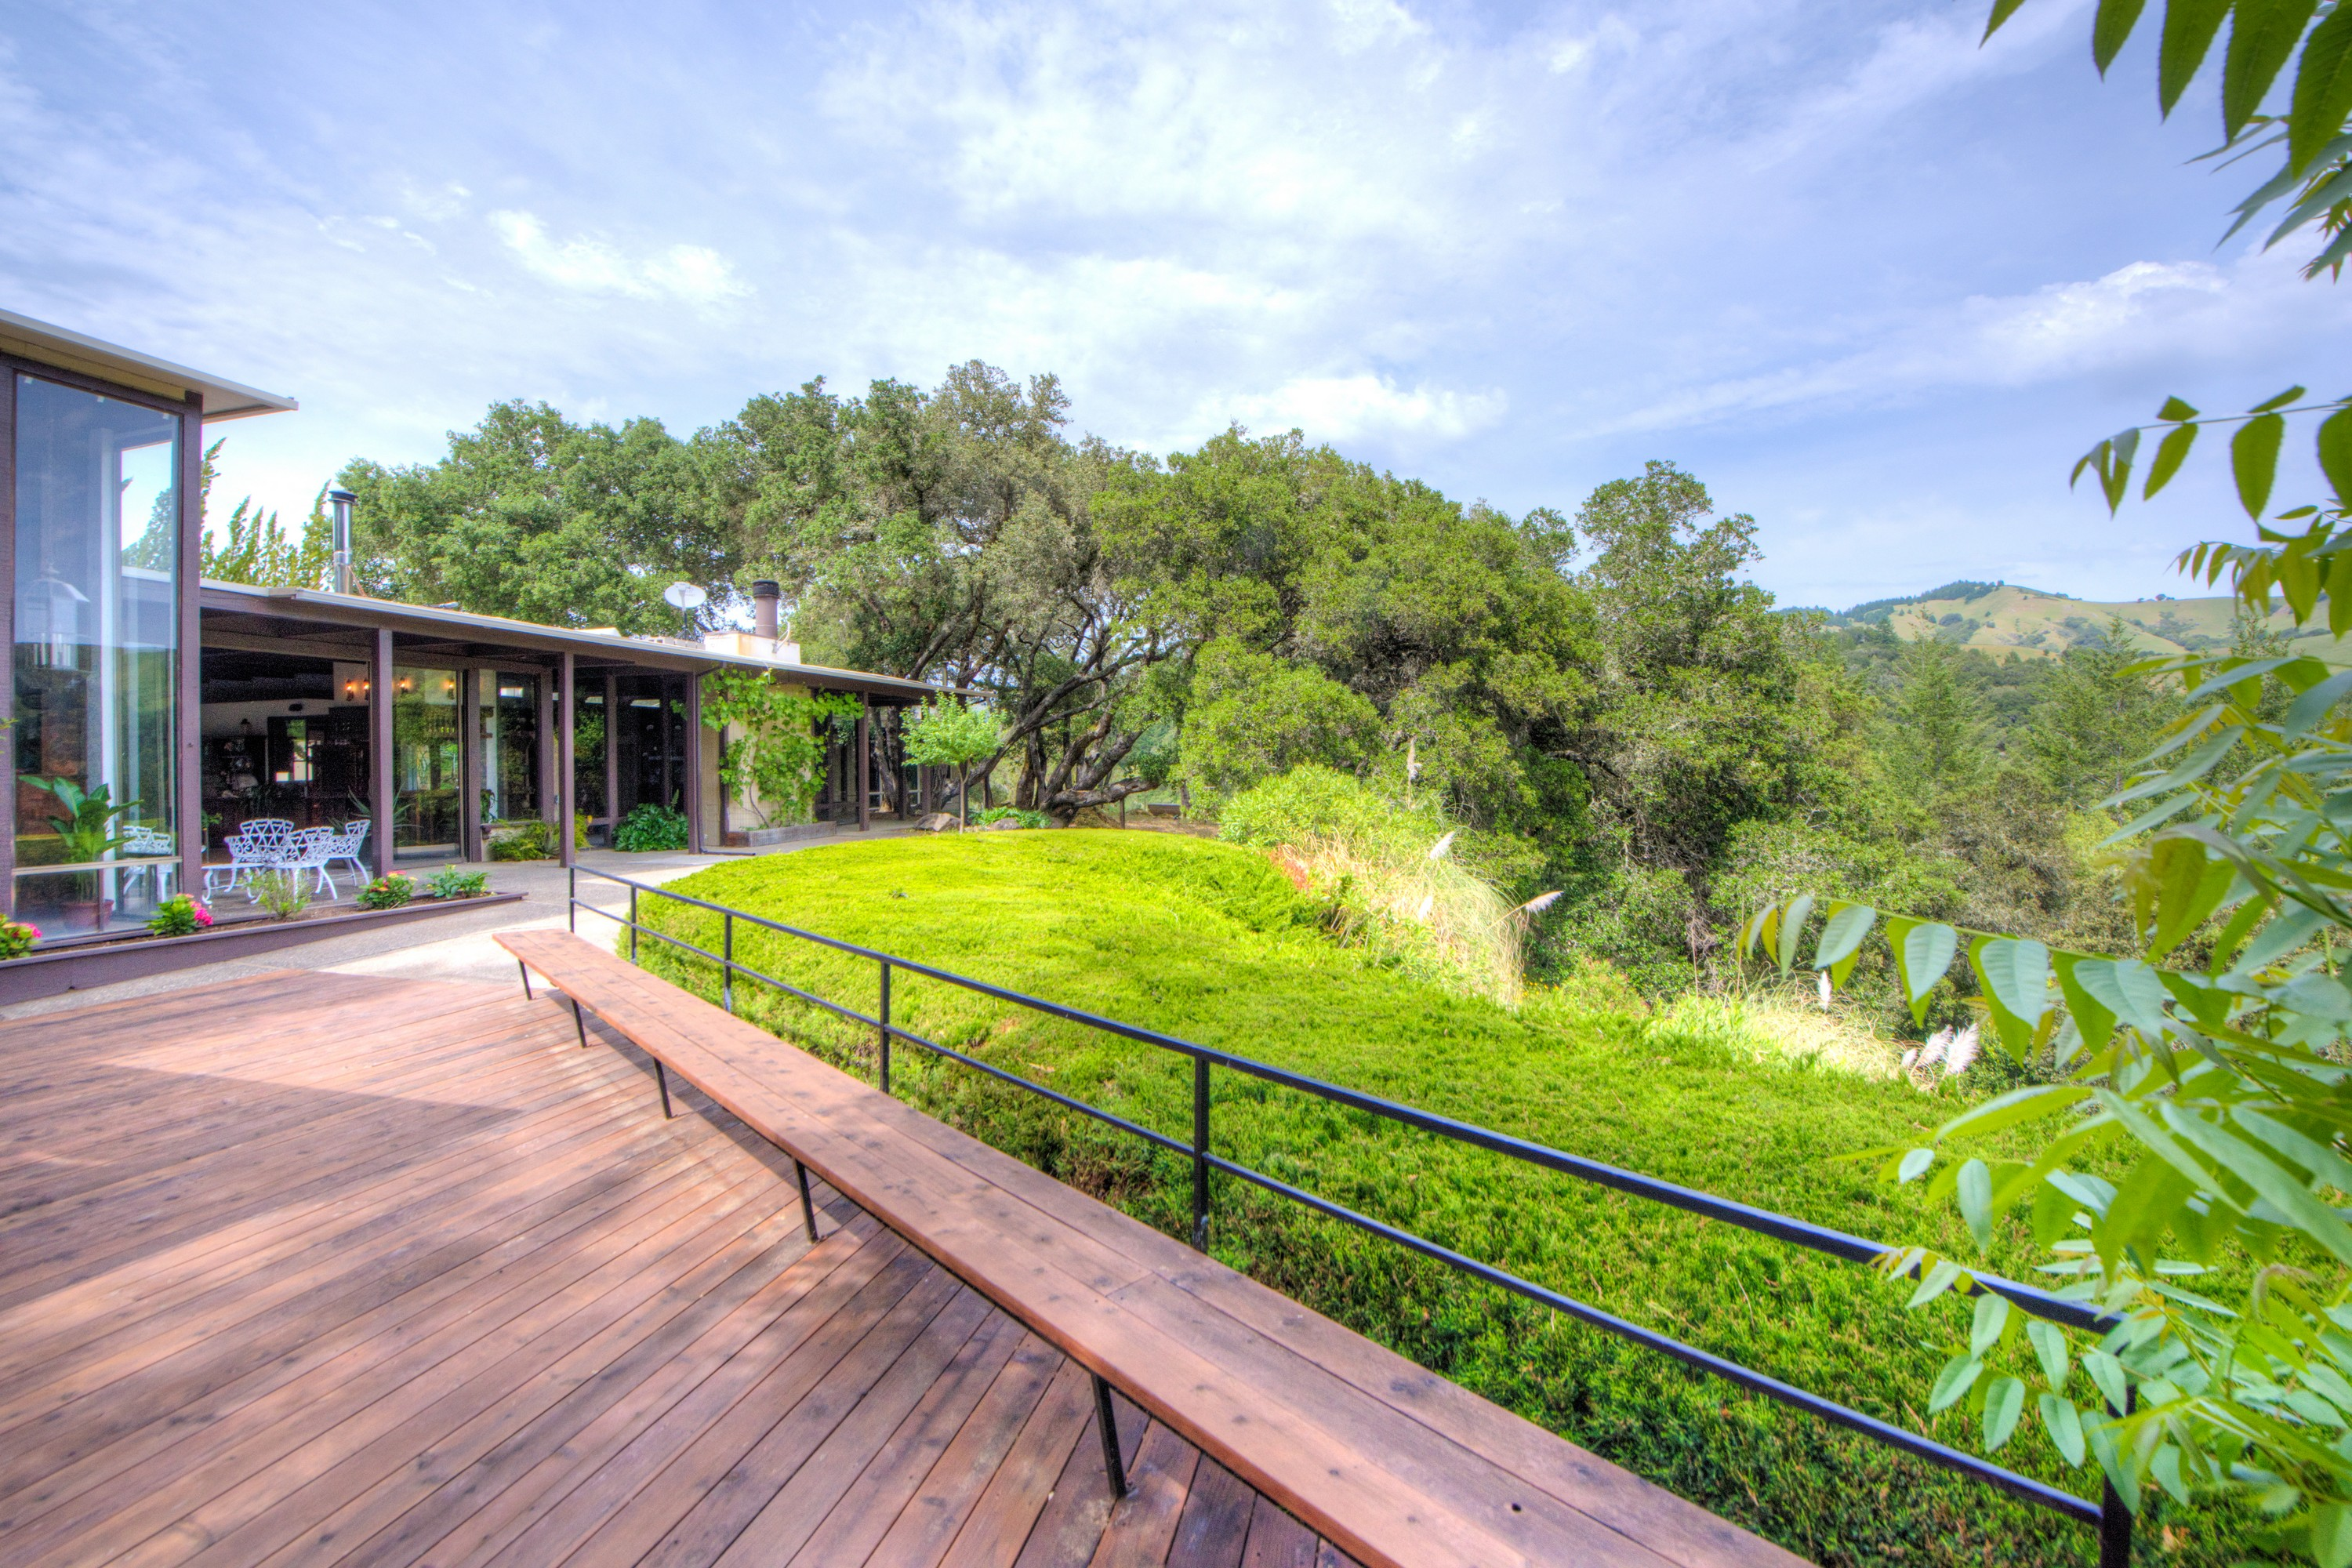 Single Family Home for Sale at Ideal Retreat with Natural Features and Mid-Century Architecture 5675 Lucas Valley Road Nicasio, California, 94946 United States